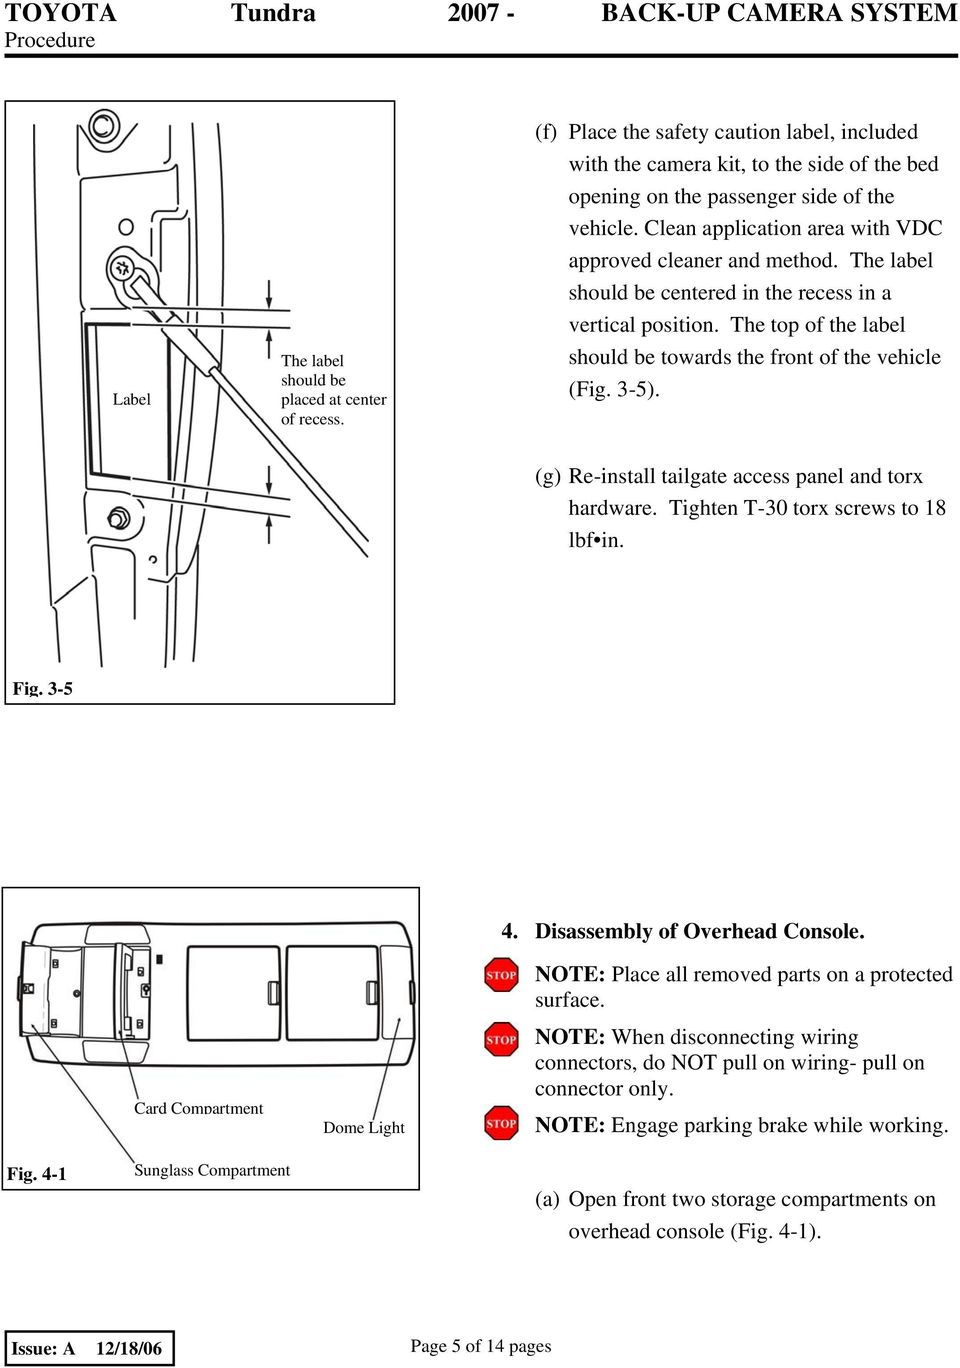 3-5). (g) Re-install tailgate access panel and torx hardware. Tighten T-30 torx screws to 18 lbf in. Fig. 3-5 Card Compartment Dome Light 4. Disassembly of Overhead Console.